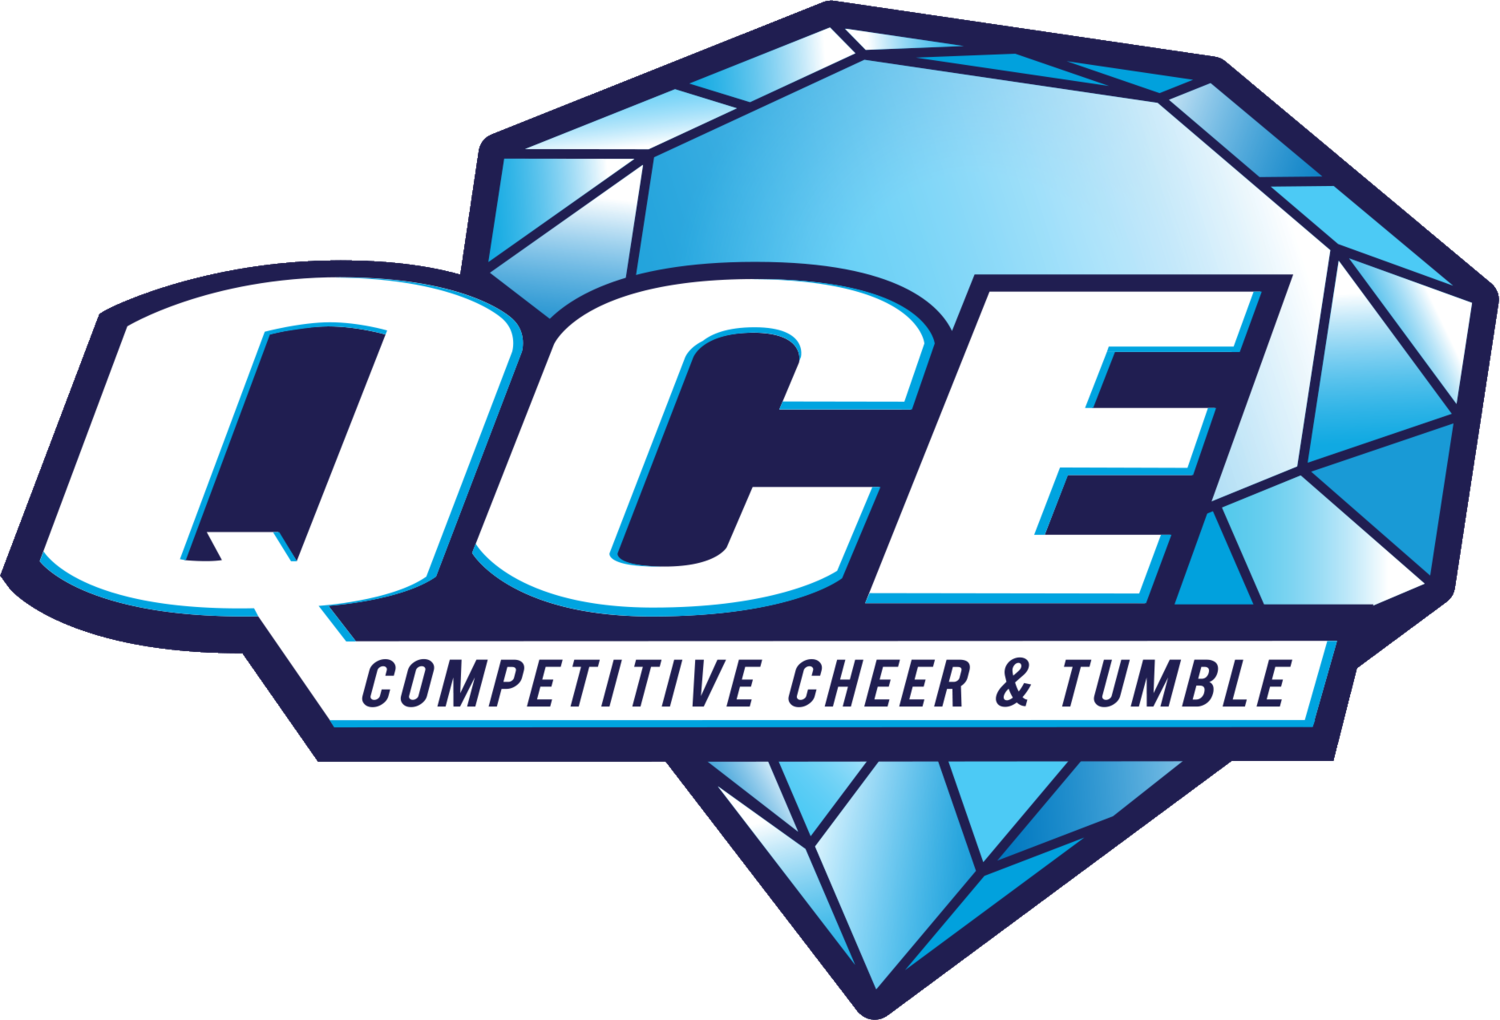 Queensland Cheer Elite